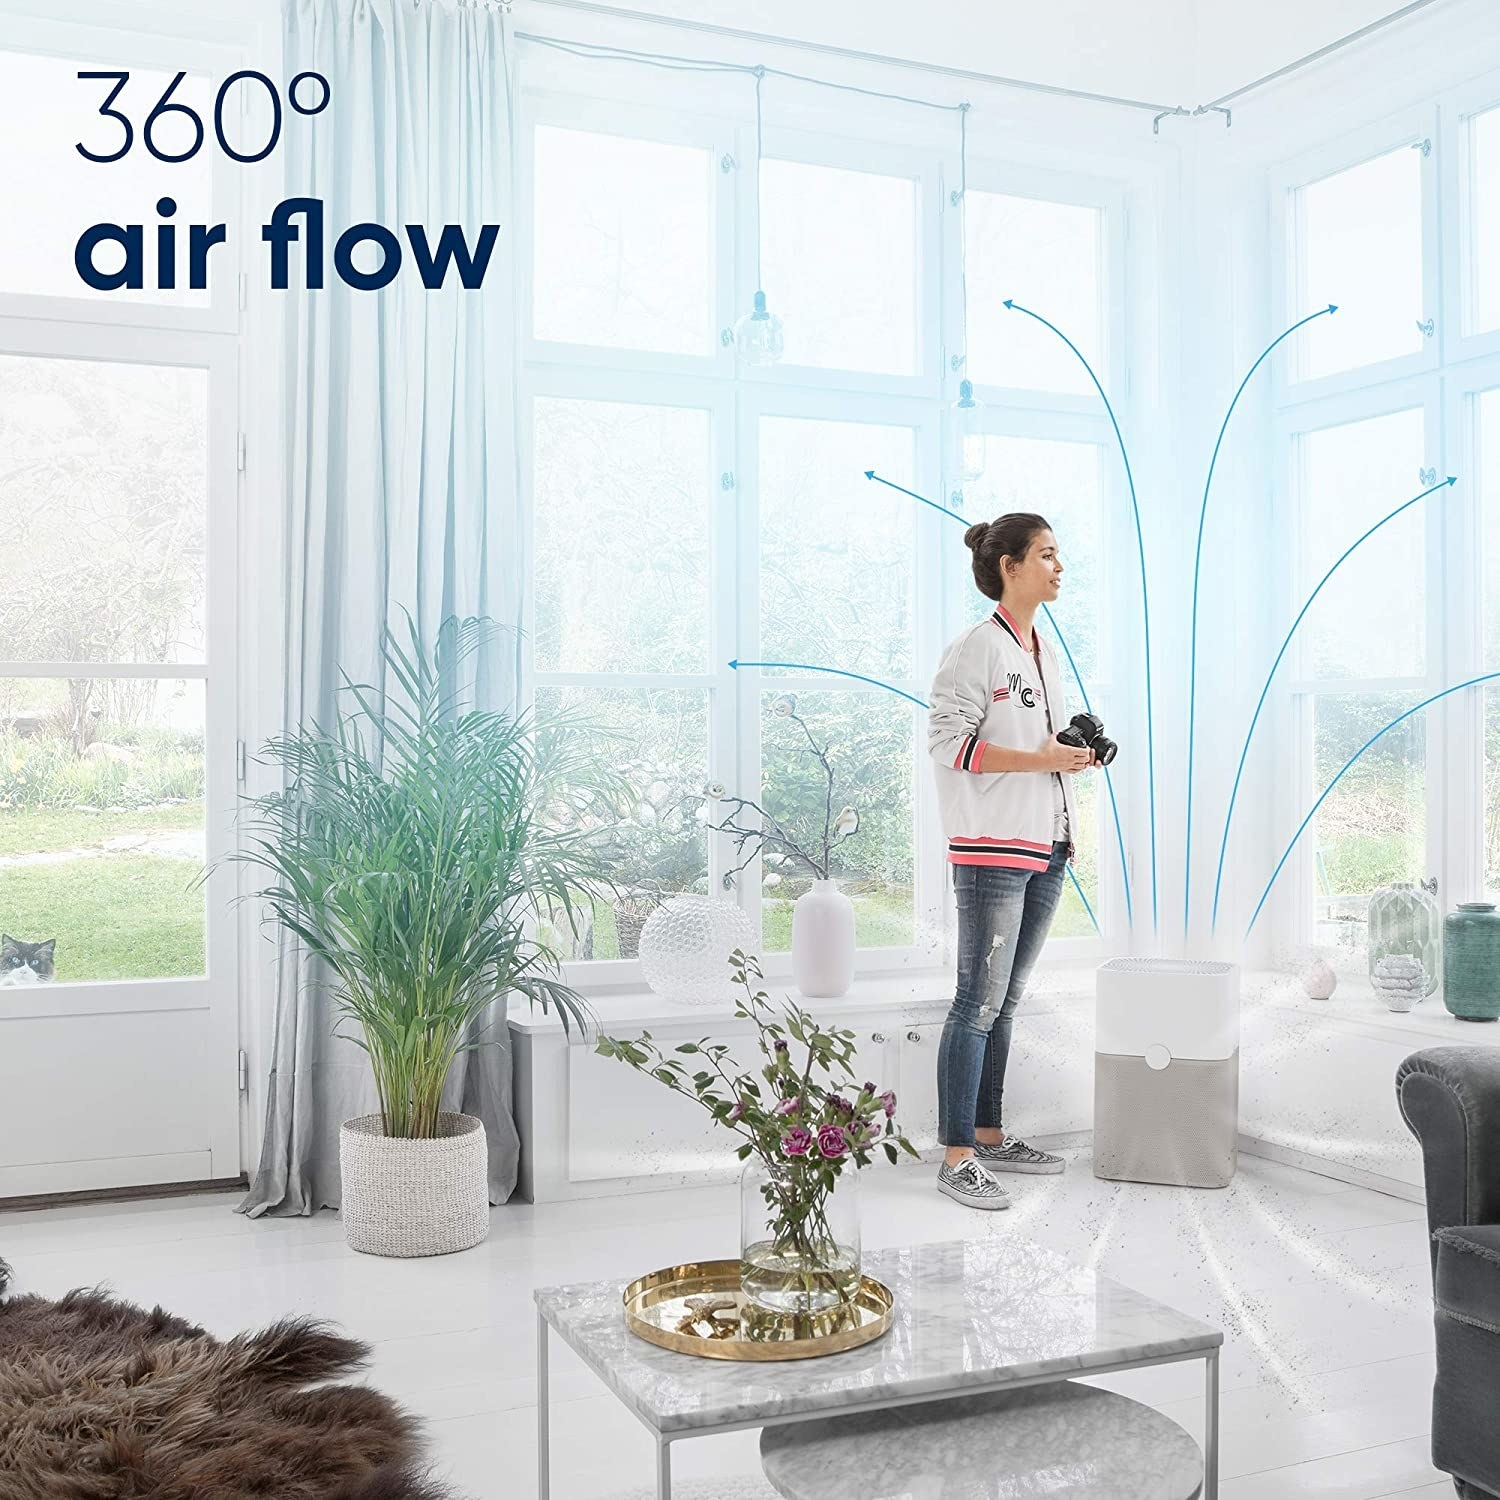 Model standing in a room with white and gray air purifier